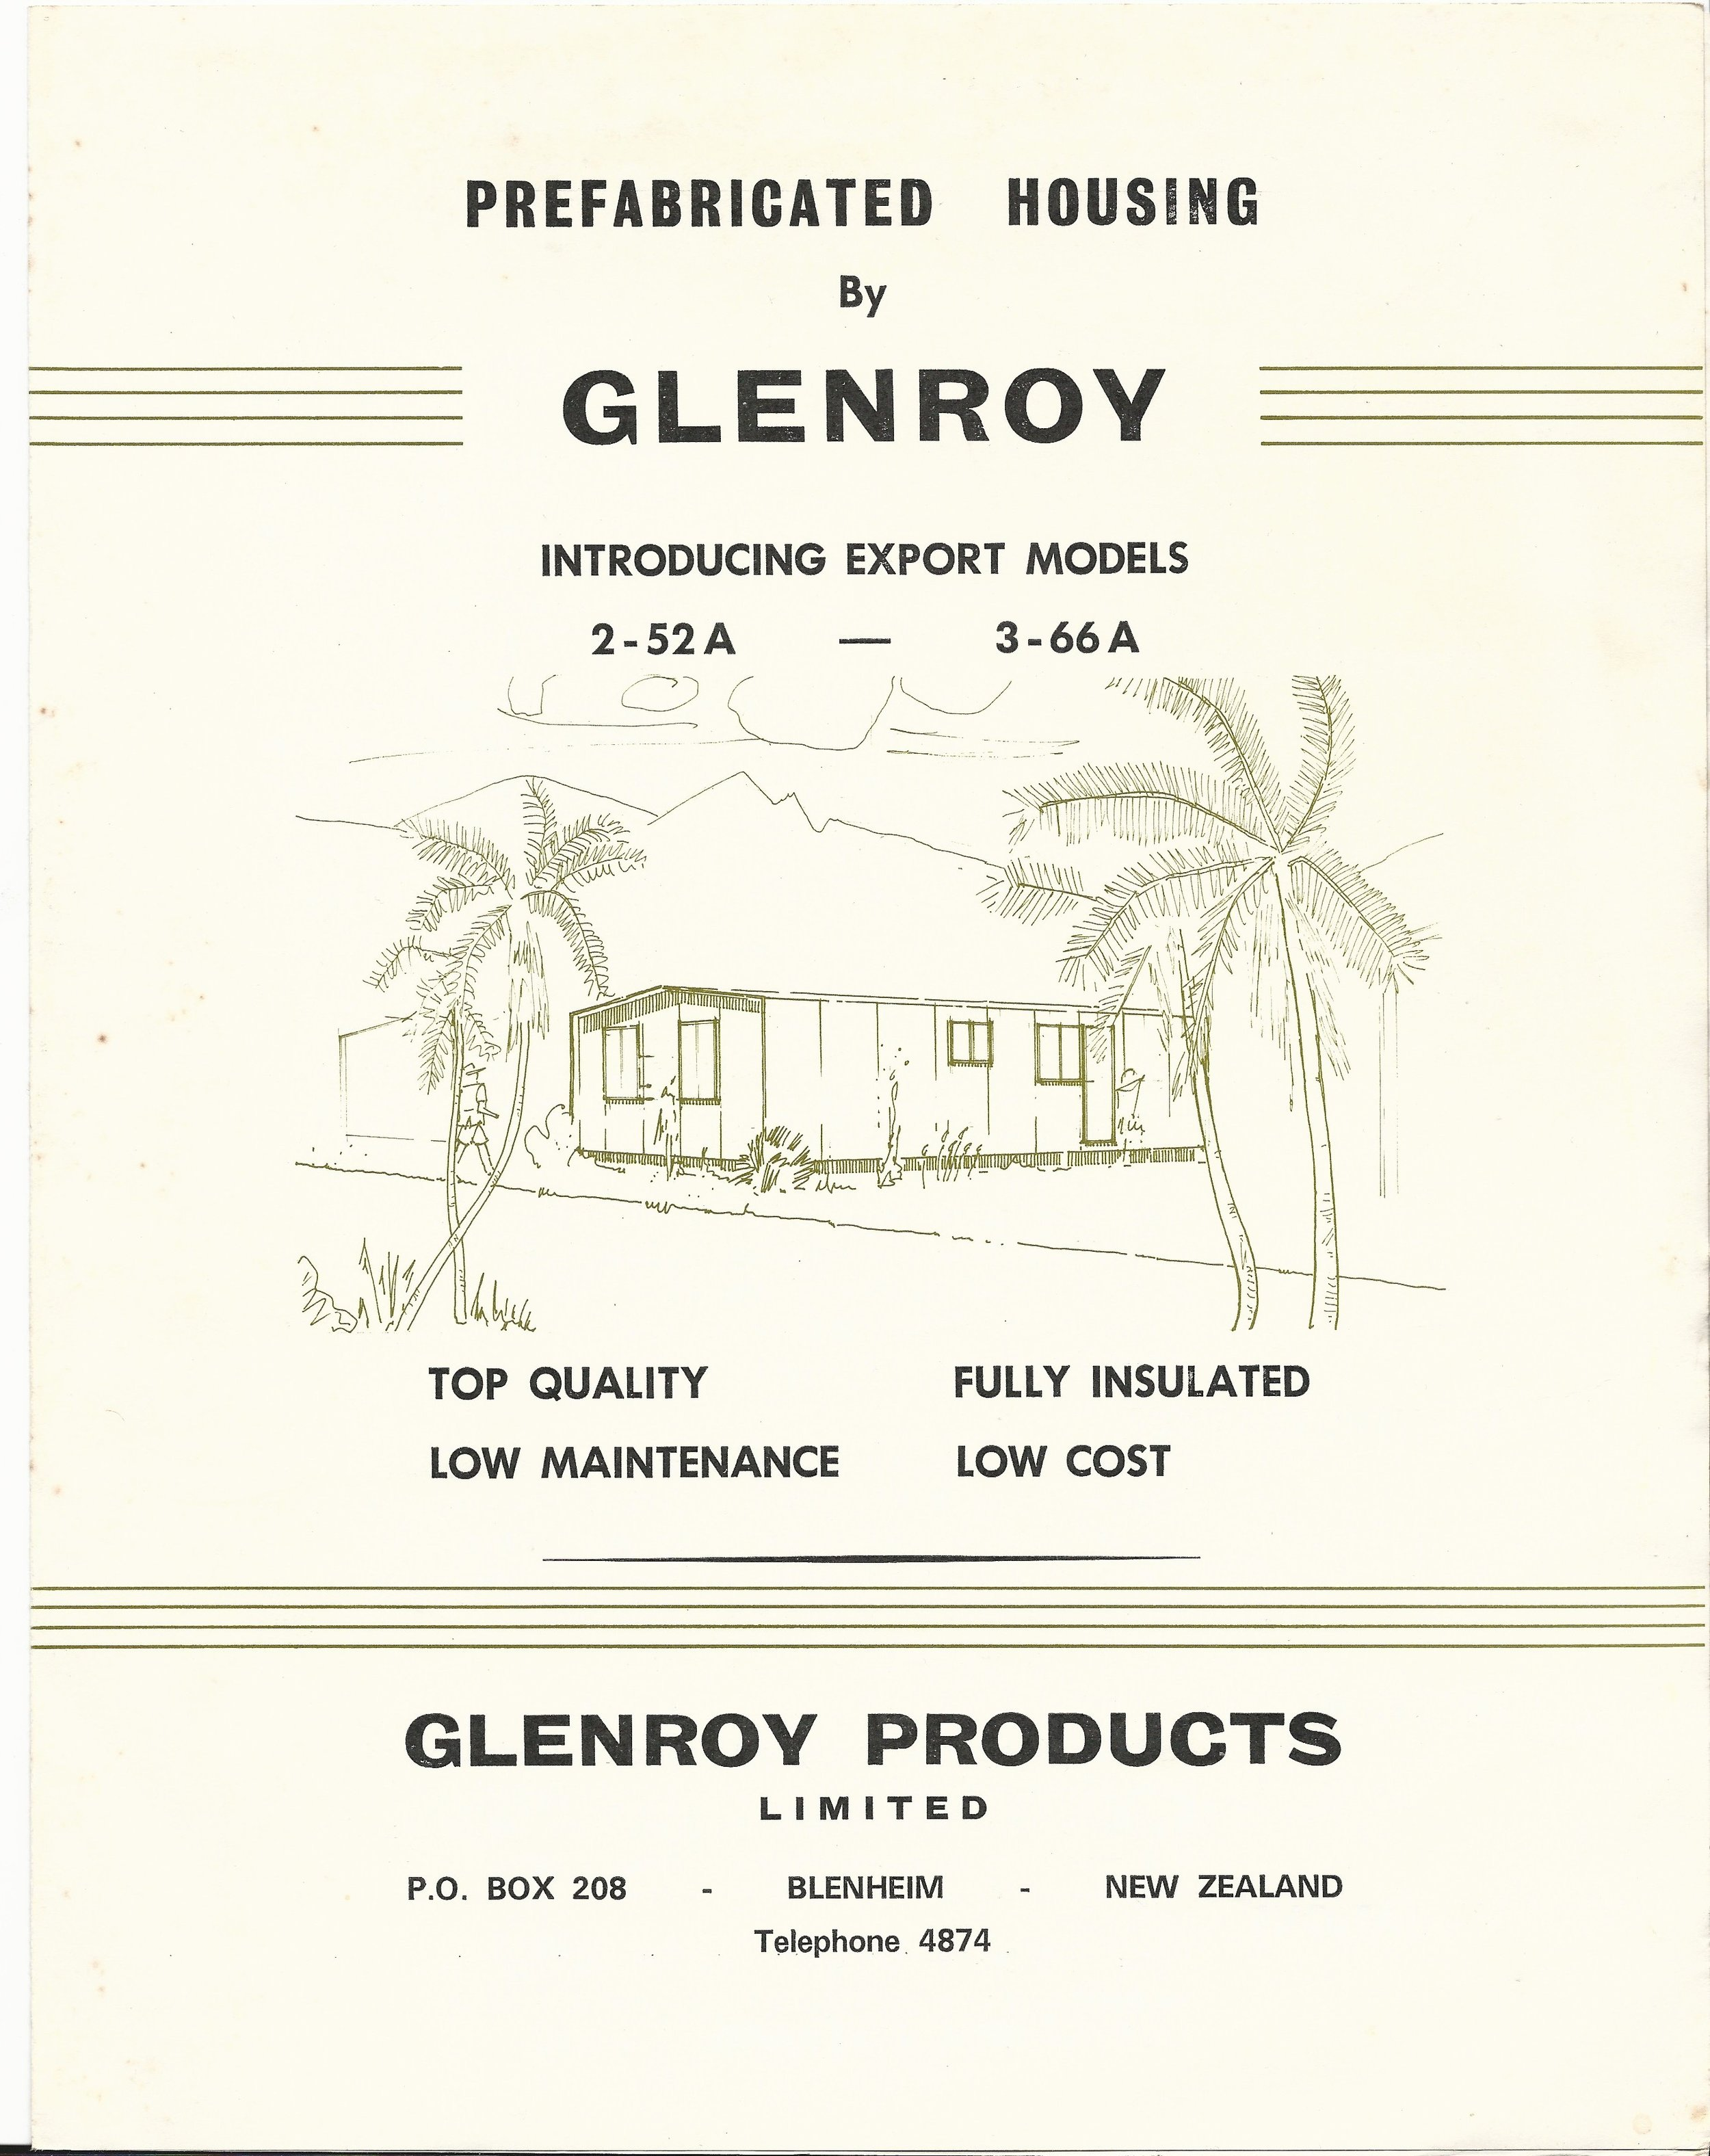 First Advertising & Market Expansion - The ability of our prefabricated house components to be easily shipped via container allowed for expansion into the Pacific Islands. Early marketing efforts were straightforward and to the point.